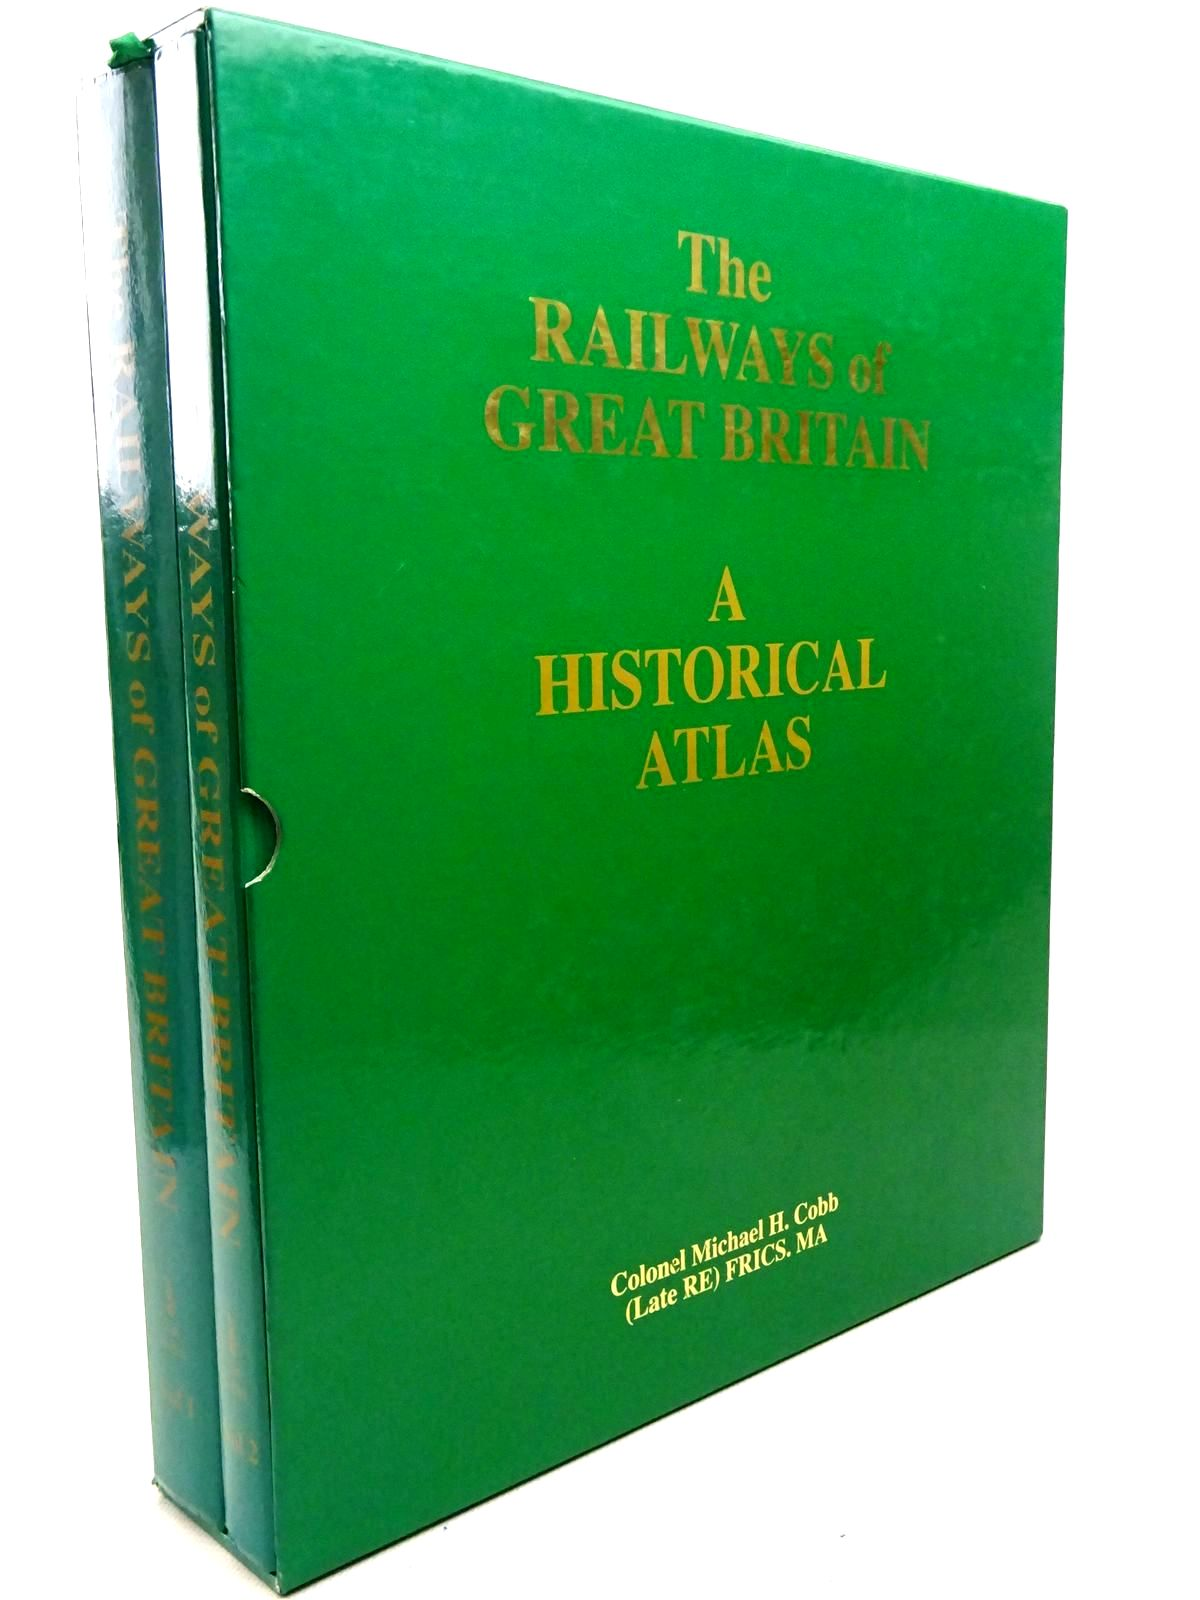 Photo of THE RAILWAYS OF GREAT BRITAIN A HISTORICAL ATLAS (2 VOLUMES)